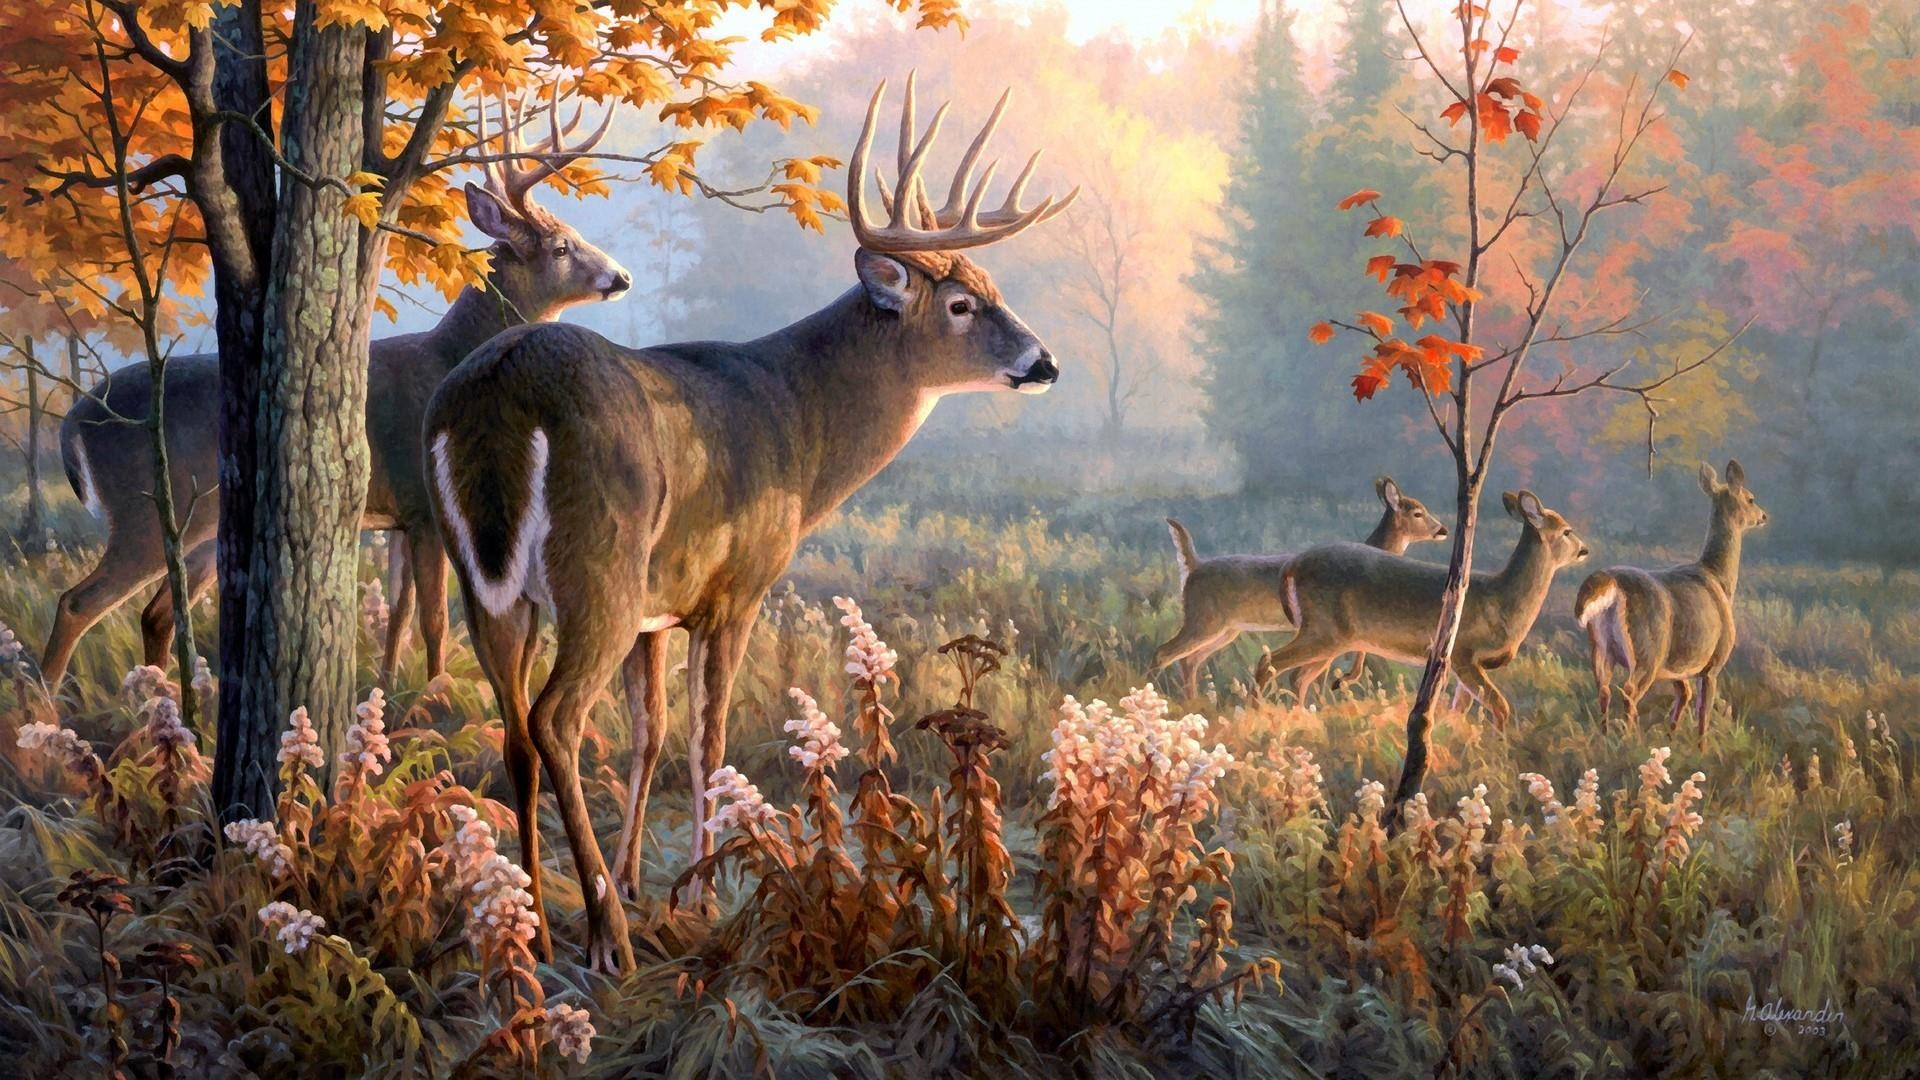 Deers in the forest – Nature painting art wallpaper